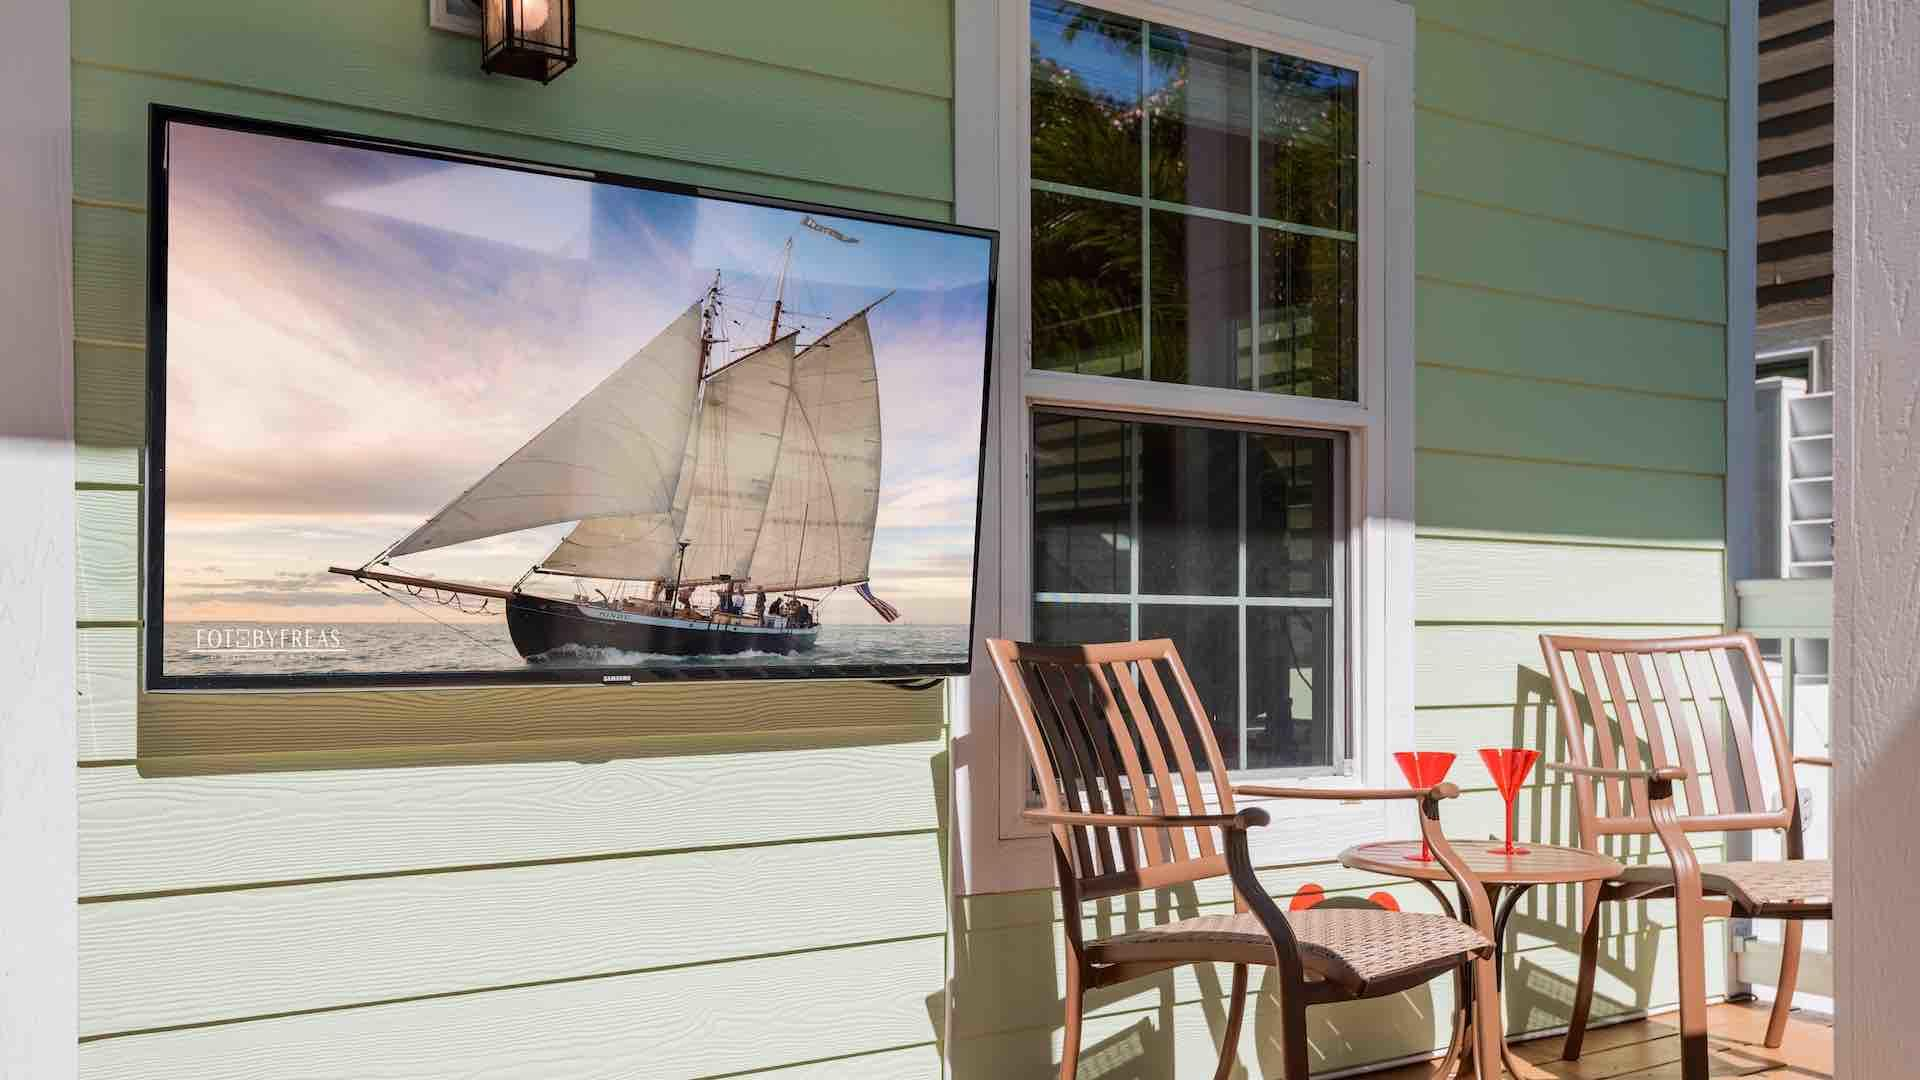 The large flat screen outdoor TV is perfect for this modern island home...